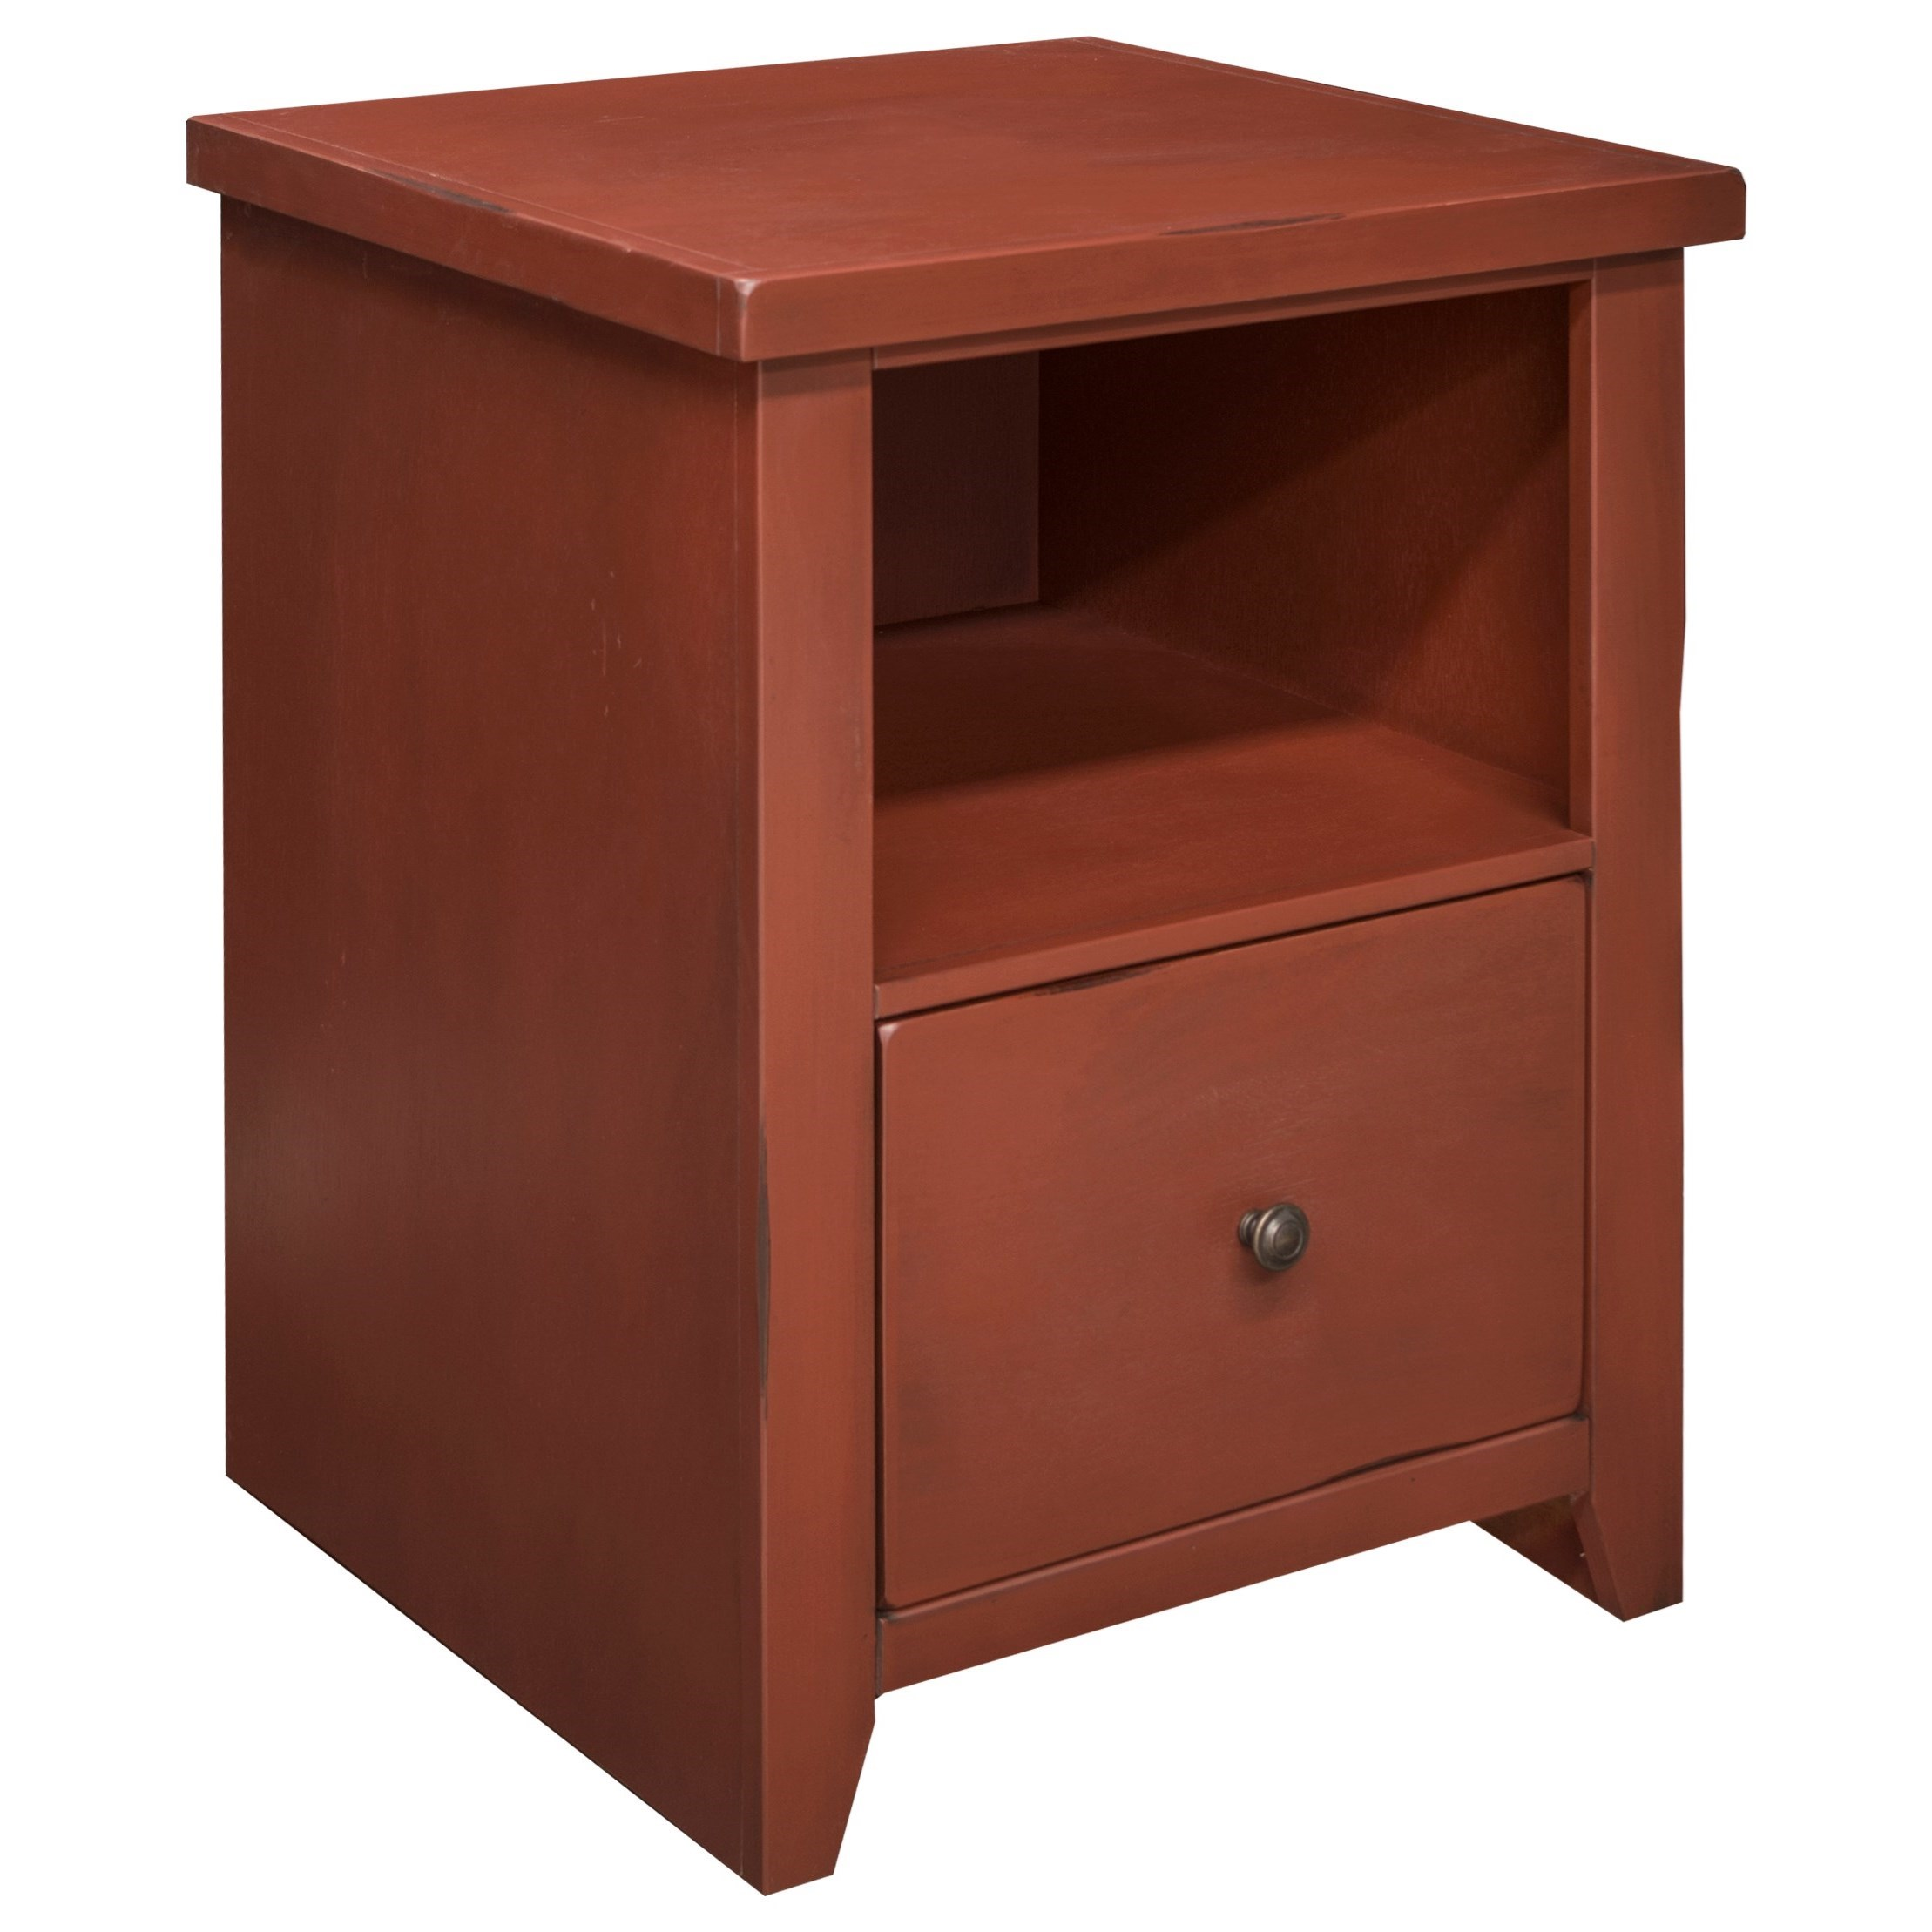 Legends Furniture Calistoga Collection Calistoga Blue File Cabinet - Item Number: CA6305-RRD